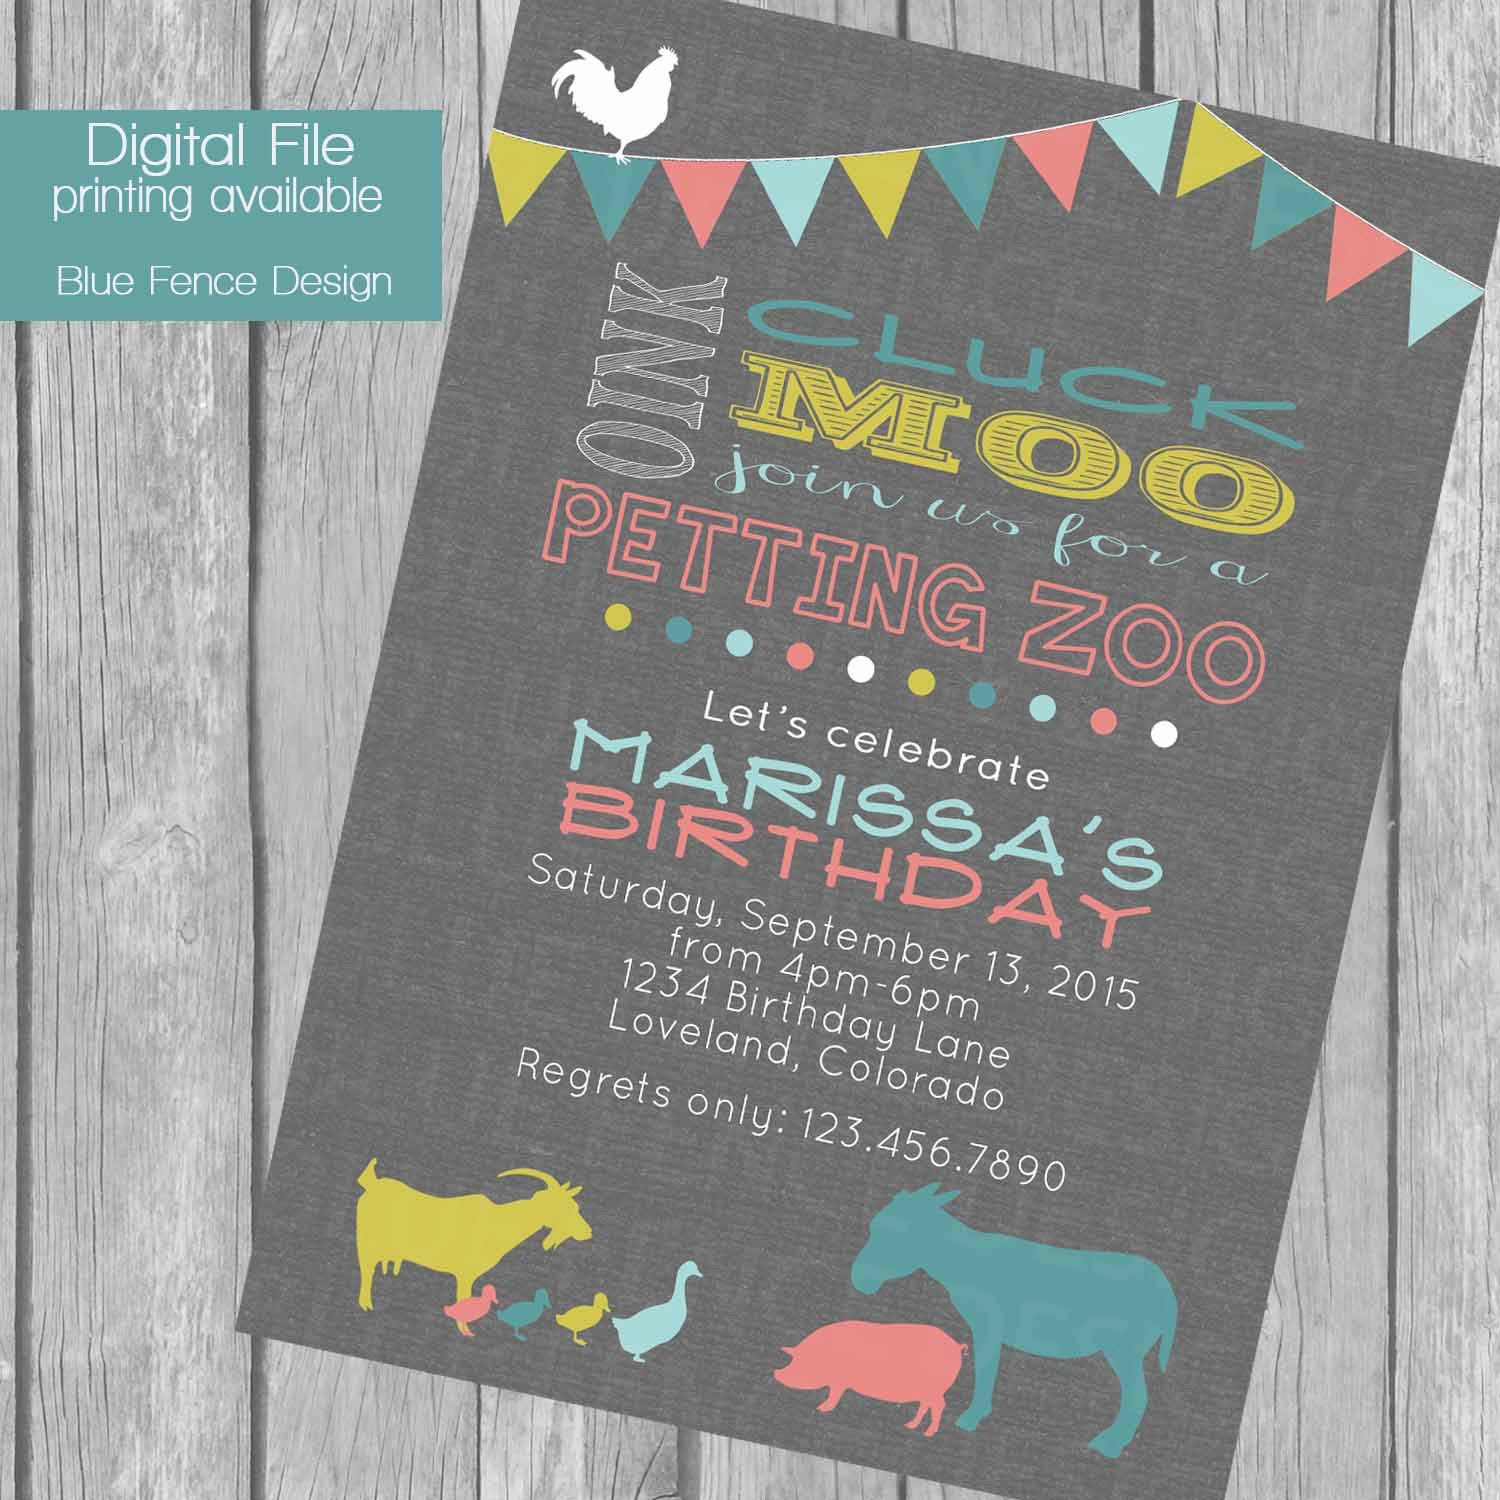 Best ideas about Petting Zoo Birthday Party . Save or Pin Petting Zoo birthday party invitation bunting banner farm Now.